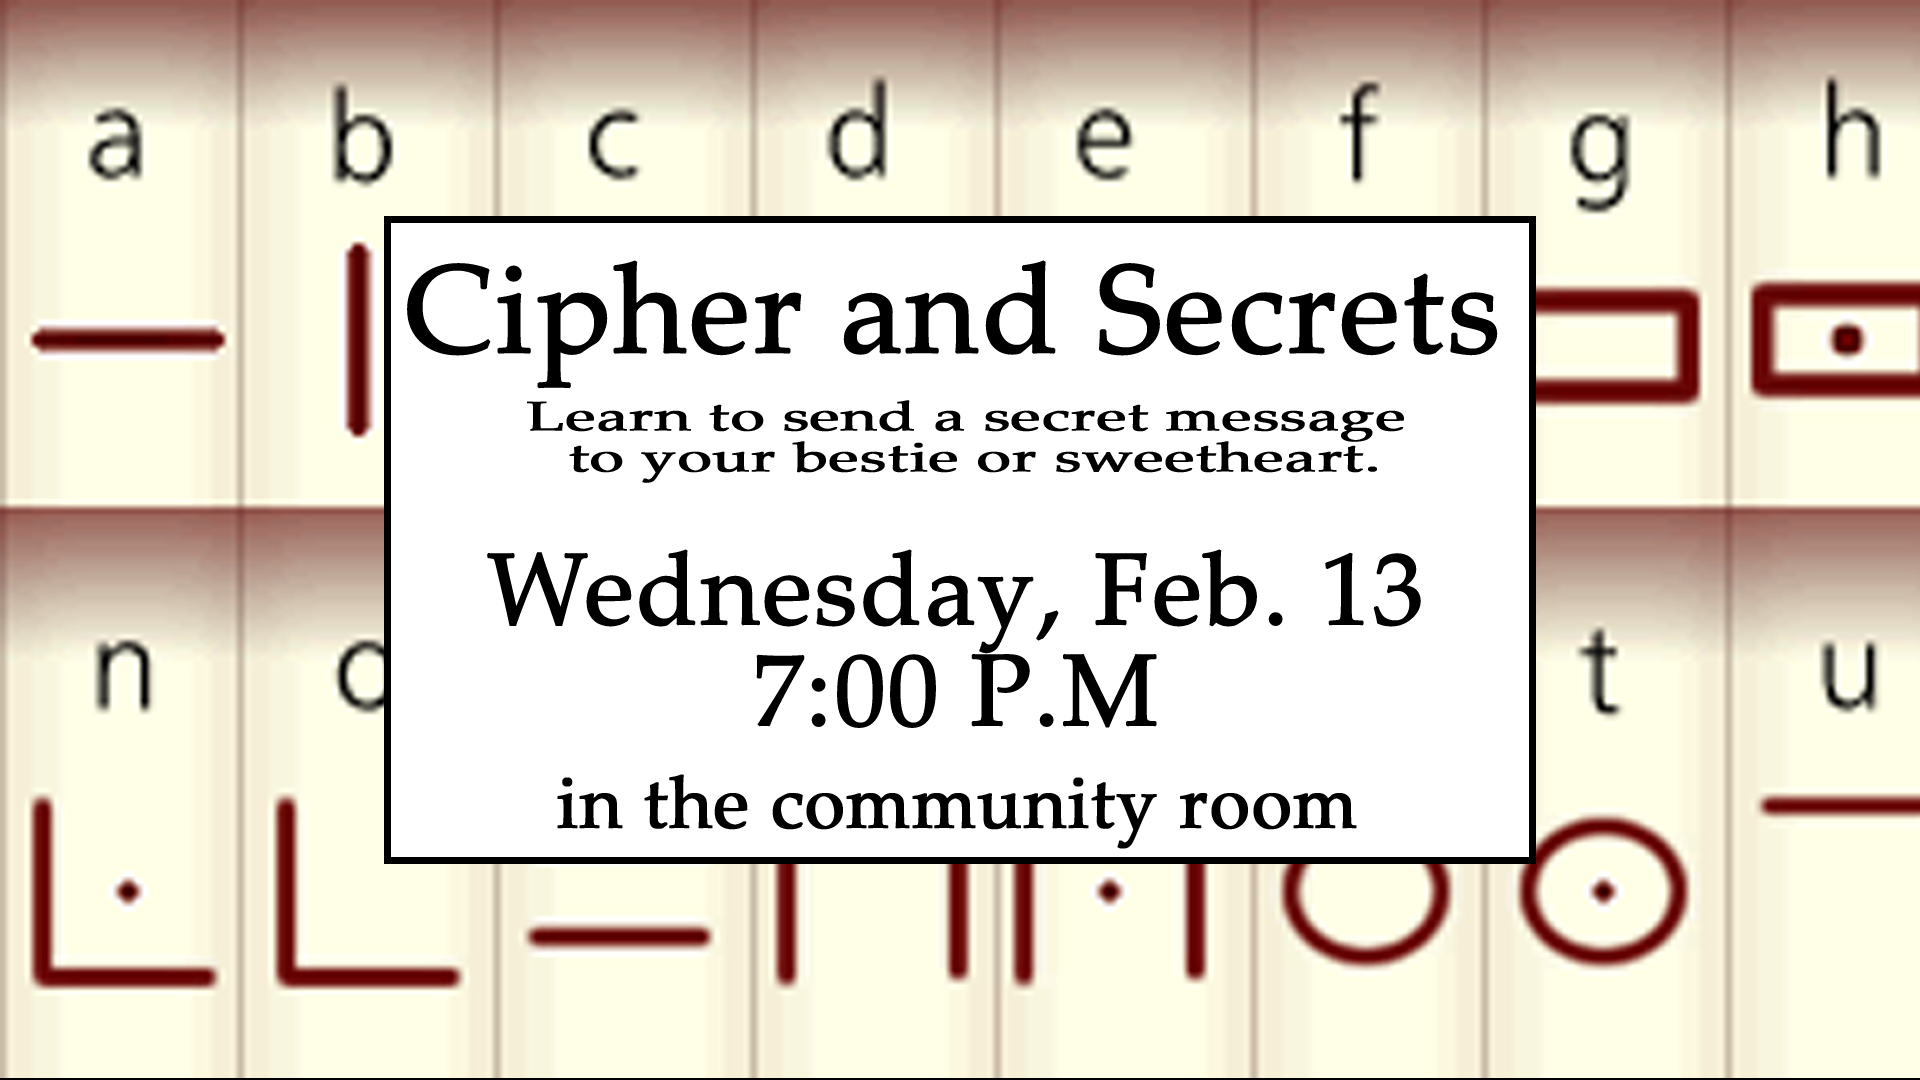 Ciphers and Secrets